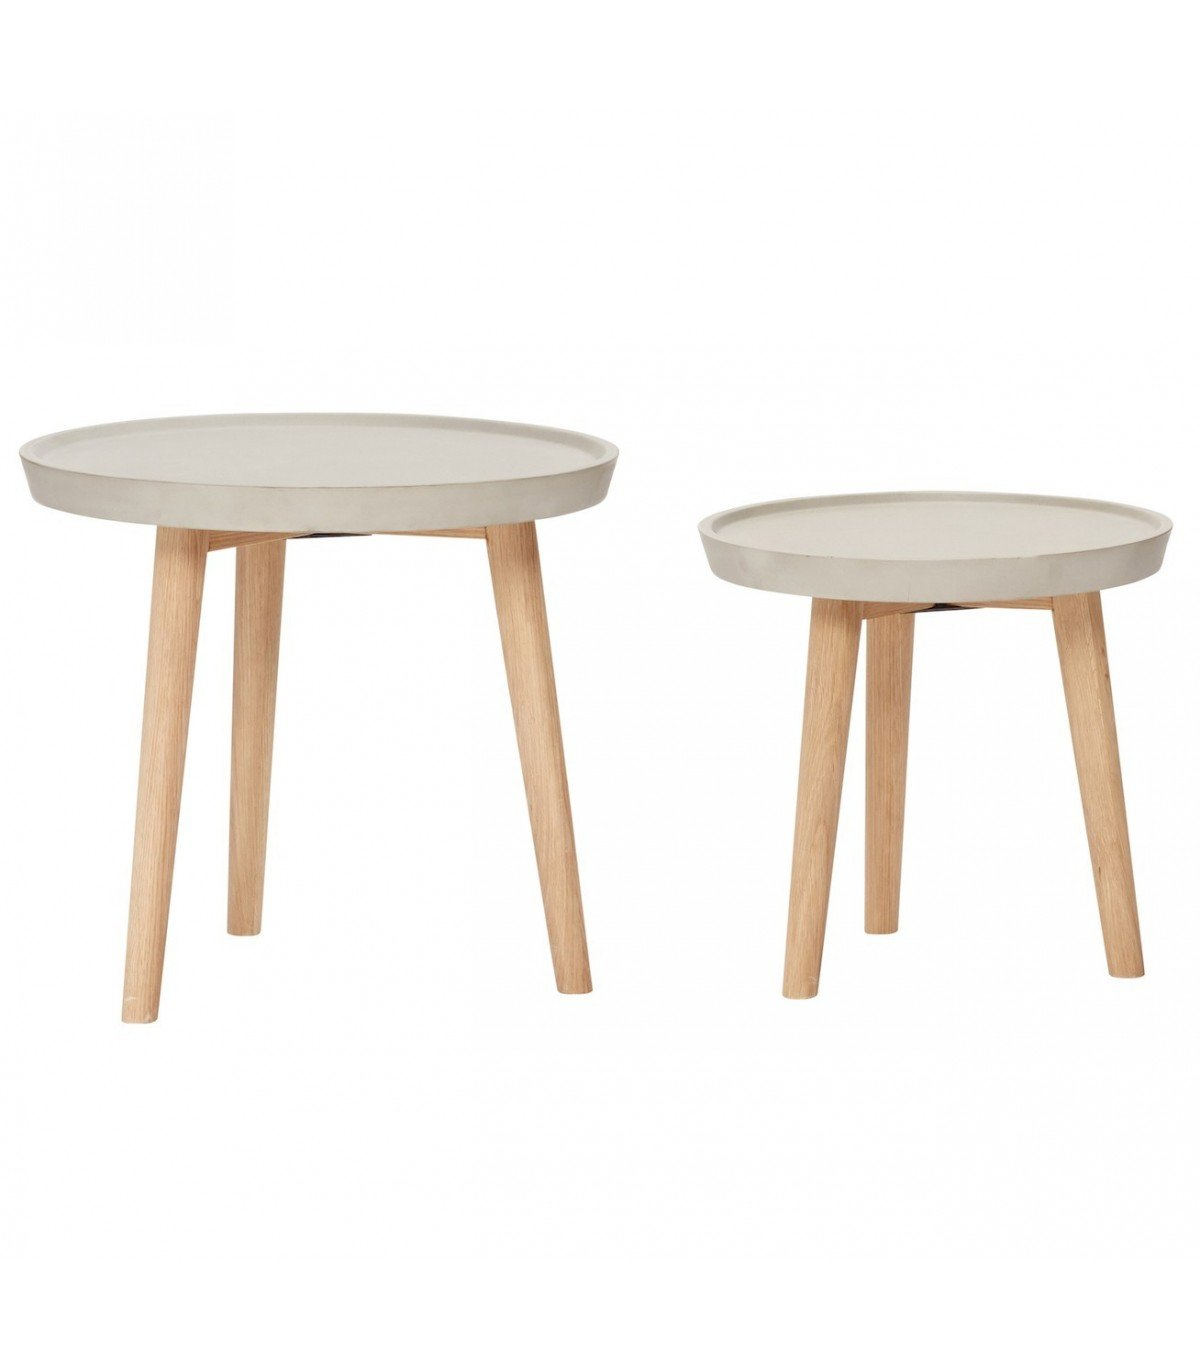 Table basse grise bois set de 2 hubsch - Table basse grise laquee ...